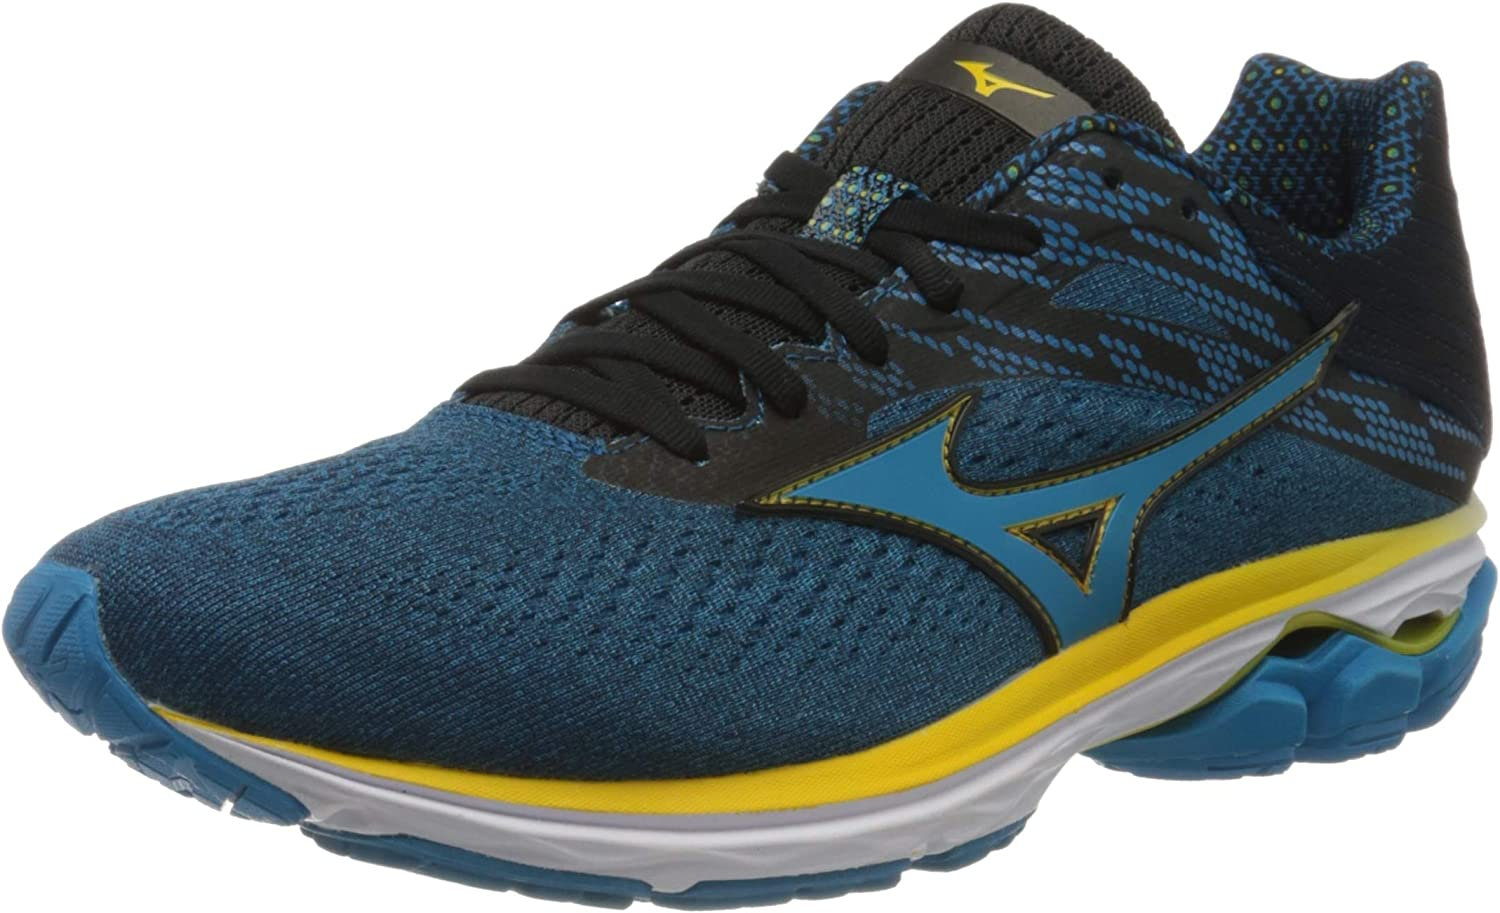 mens mizuno running shoes size 9.5 eu west account meaning french